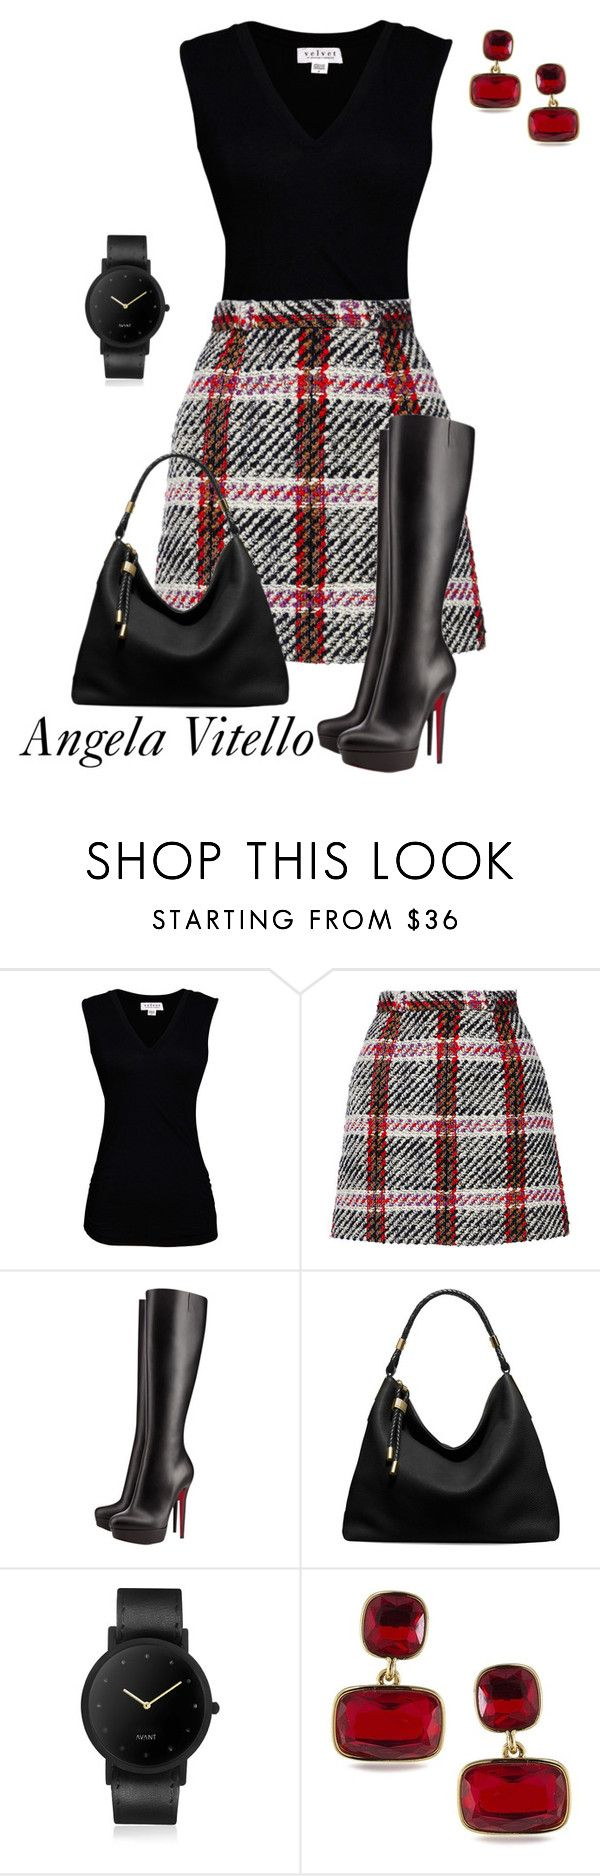 """Untitled #918"" by angela-vitello on Polyvore featuring Velvet by Graham & Spencer, Marni, Christian Louboutin, Michael Kors, South Lane and Lauren Ralph Lauren"